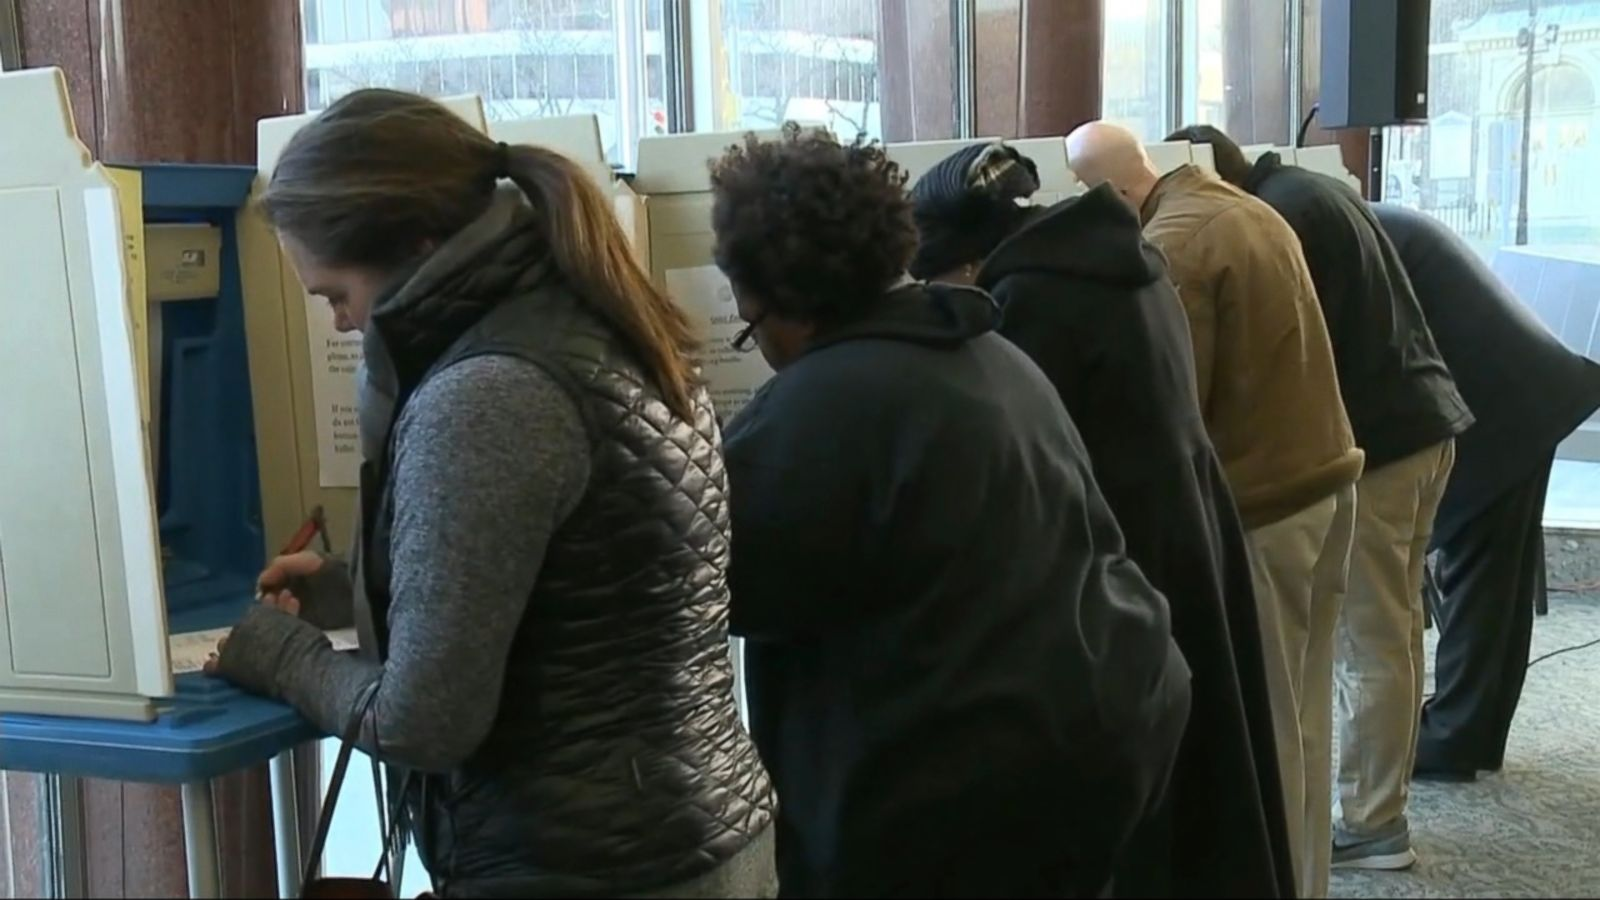 VIDEO: Michigan must begin its presidential recount at noon Monday, a federal judge ruled in a late-night order that could make it more likely the state will complete the count ahead of a Dec. 13 deadline.